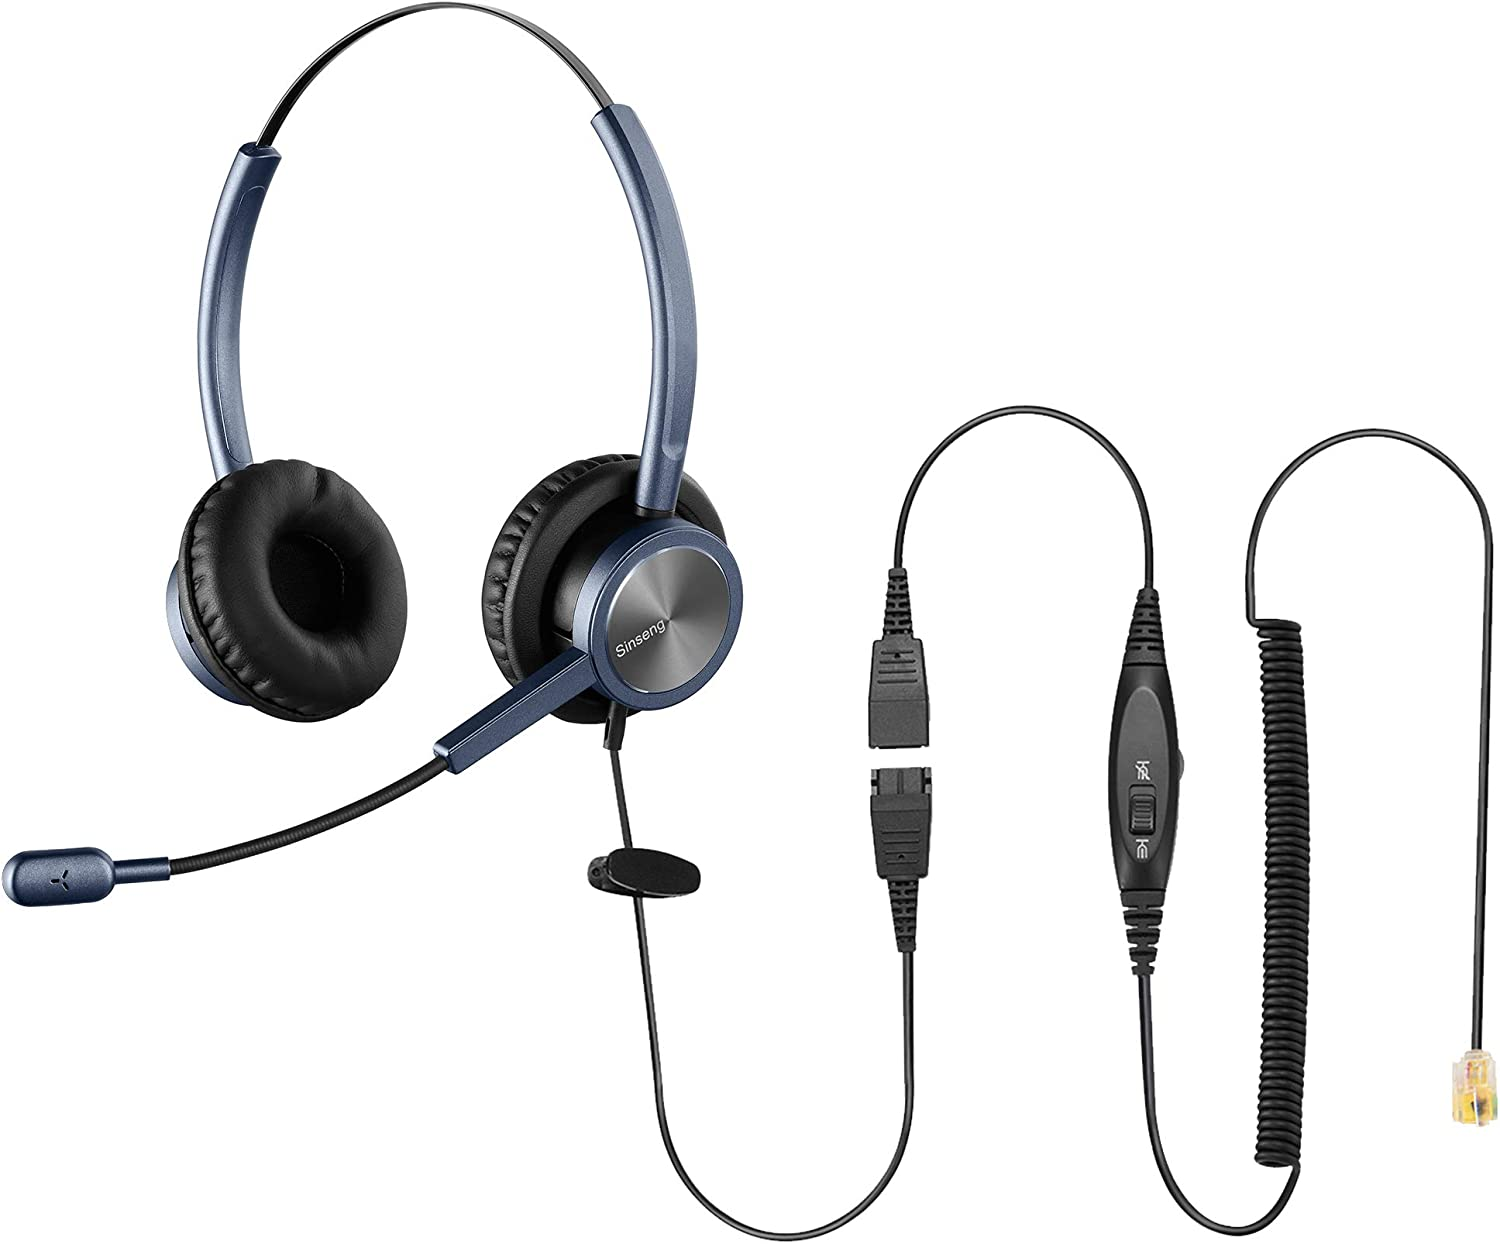 Sinseng Headset with Microphone Compatible with Cisco Phone for Call Center Office, Telephone Headphones Compatible with Cisco CP-7841 7931G 7940 7941G 7942G 7945G 7960 7961G 7962G 7965G 7970 8841